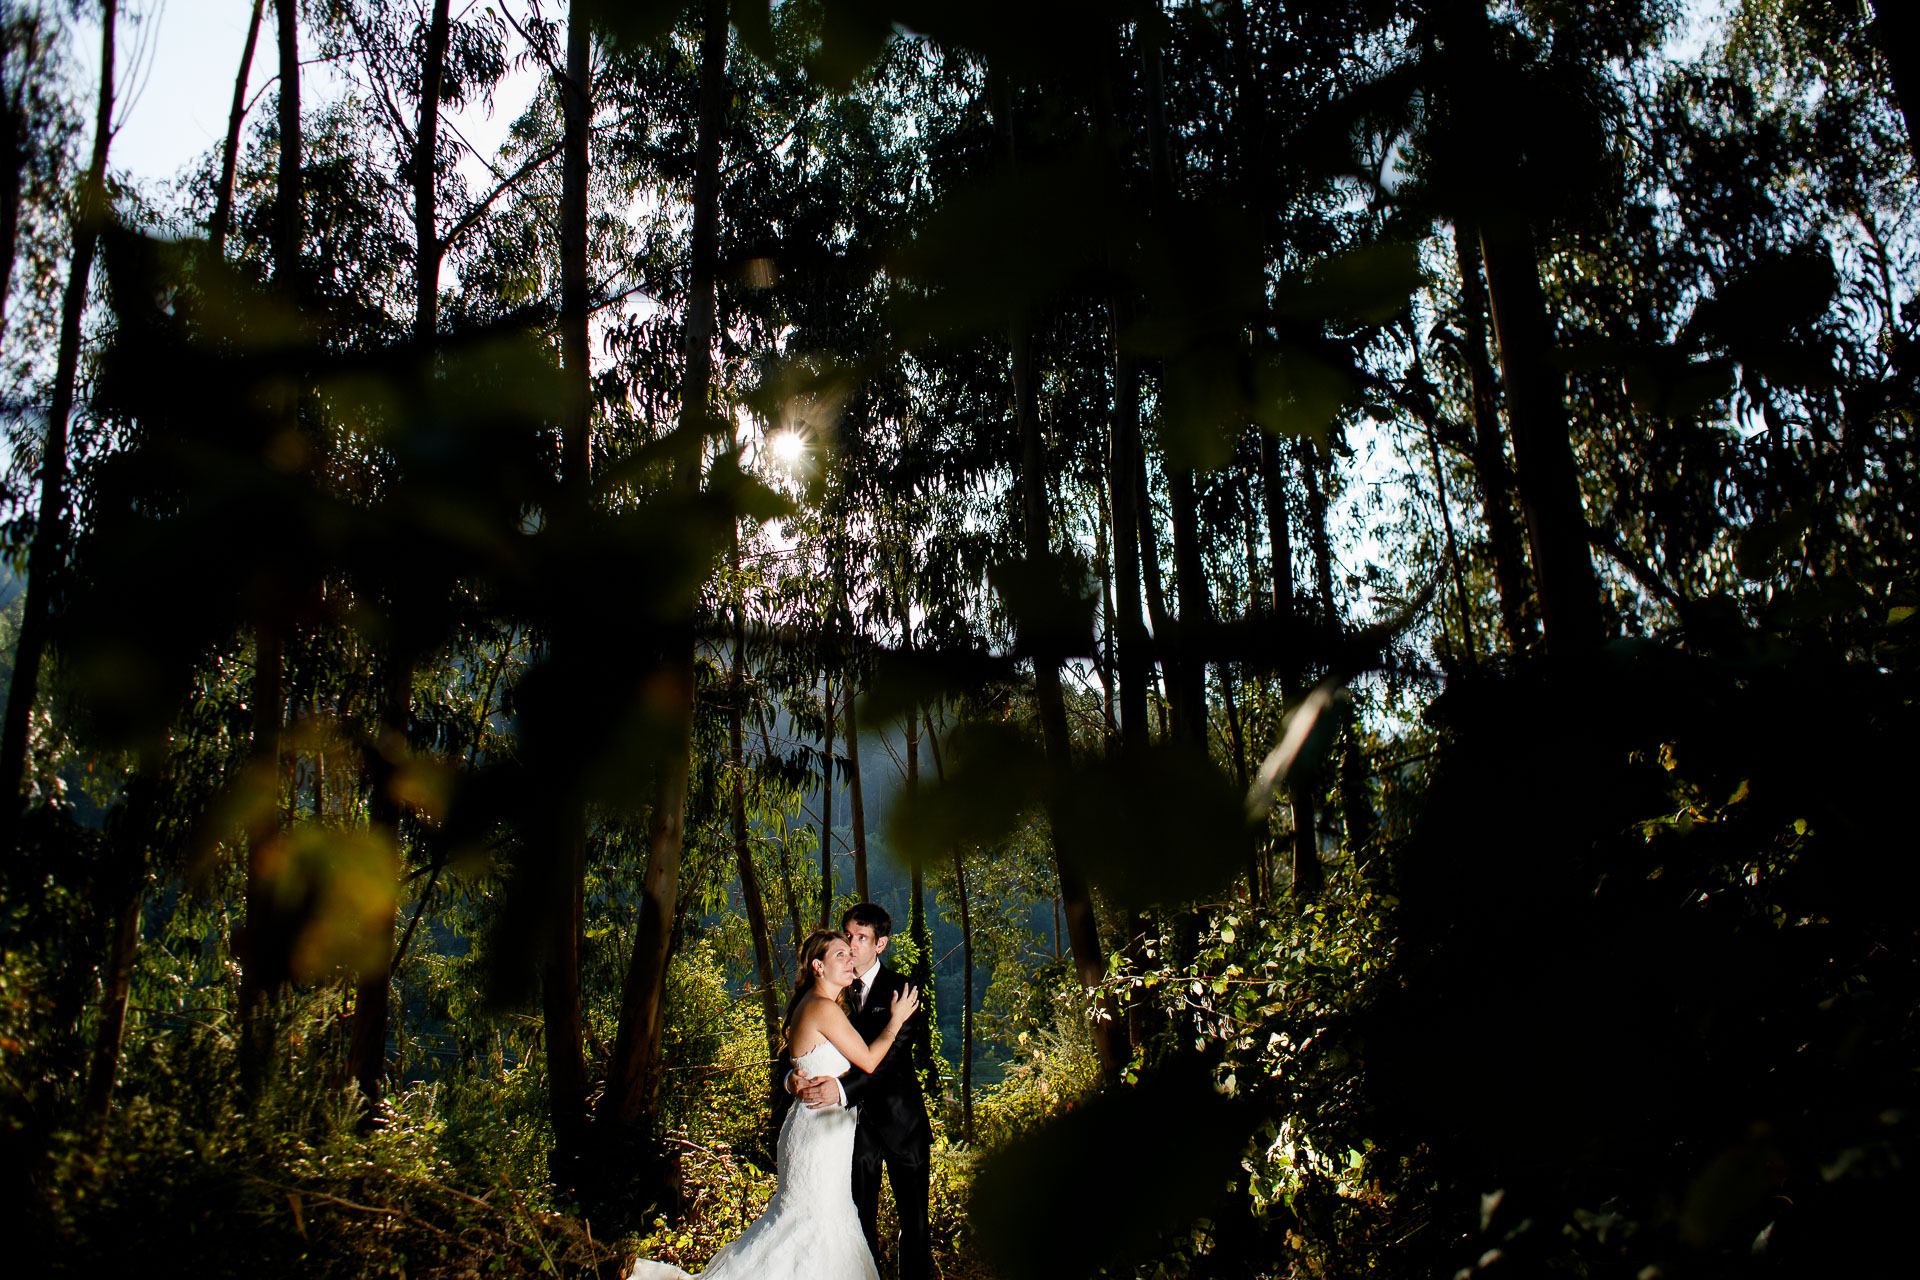 post boda en el bosque bakio